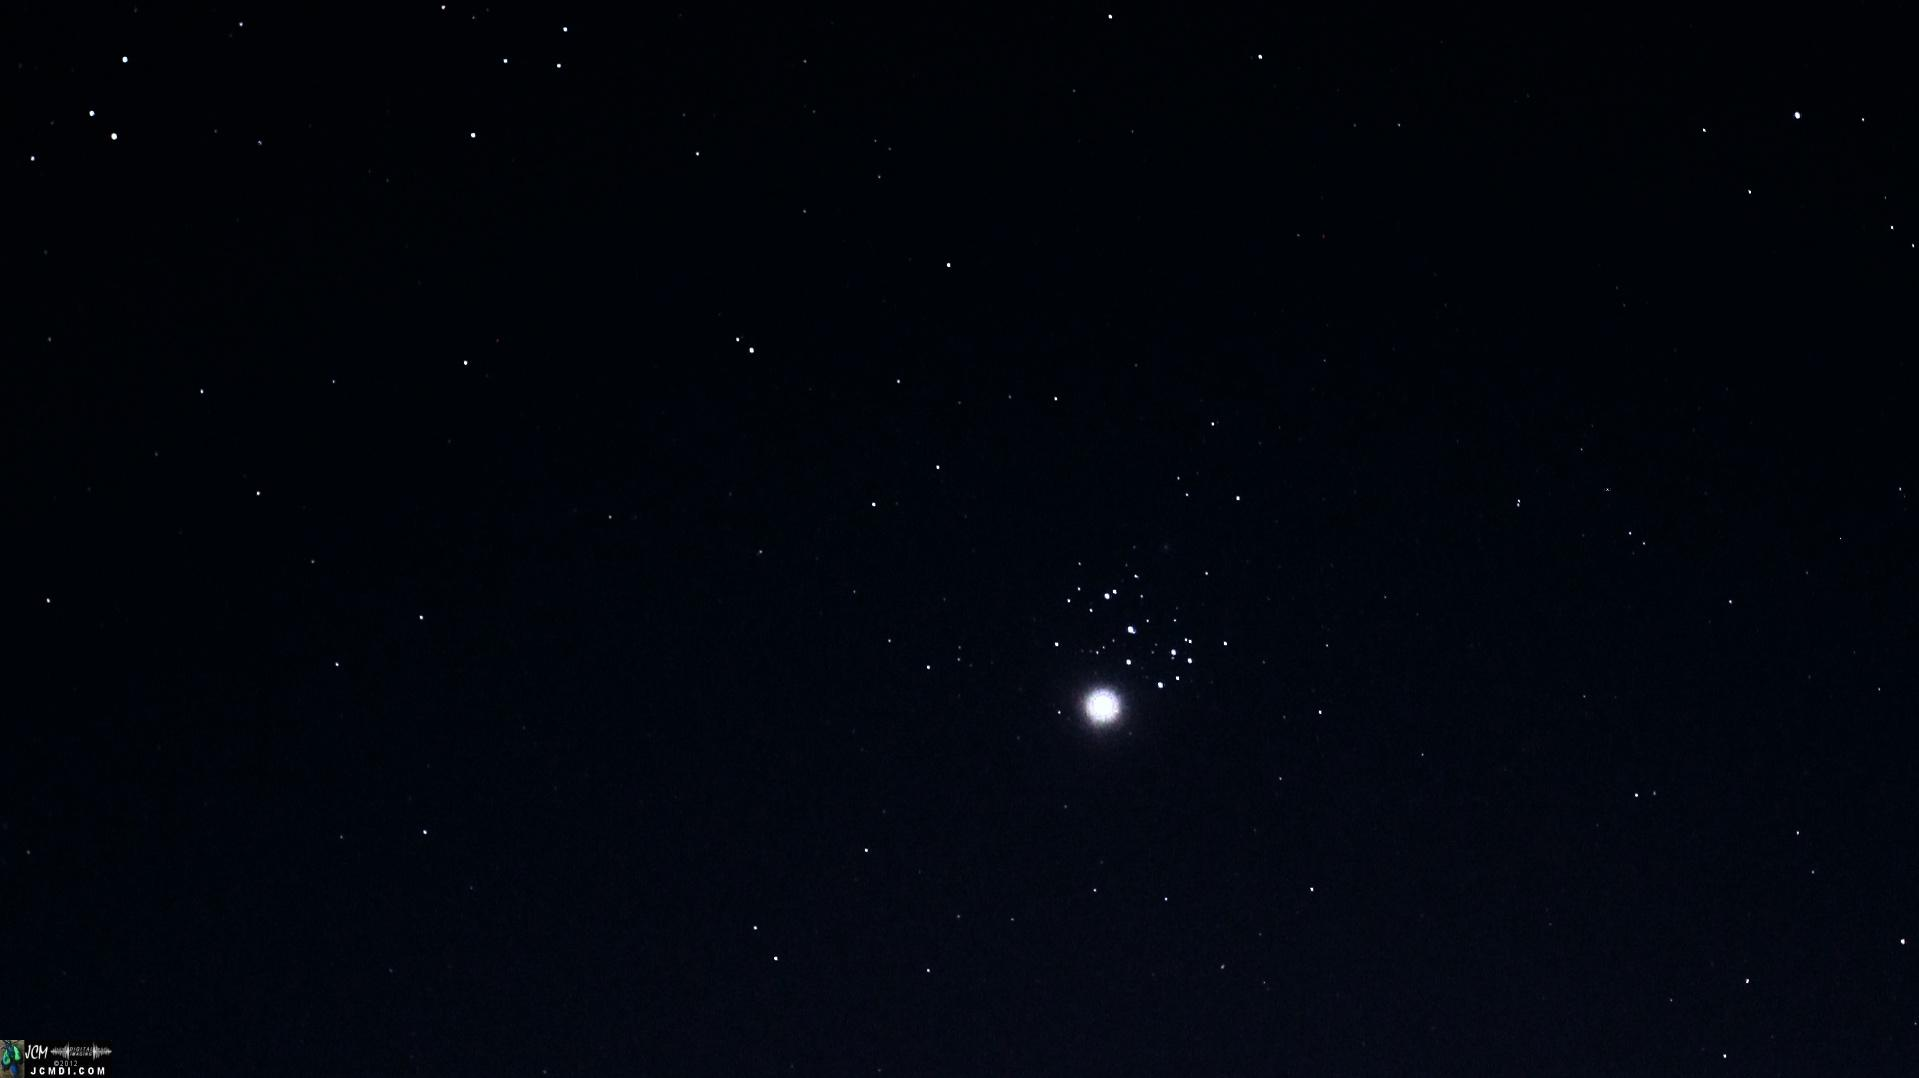 Pleiades Star Cluster and Venus conjuction